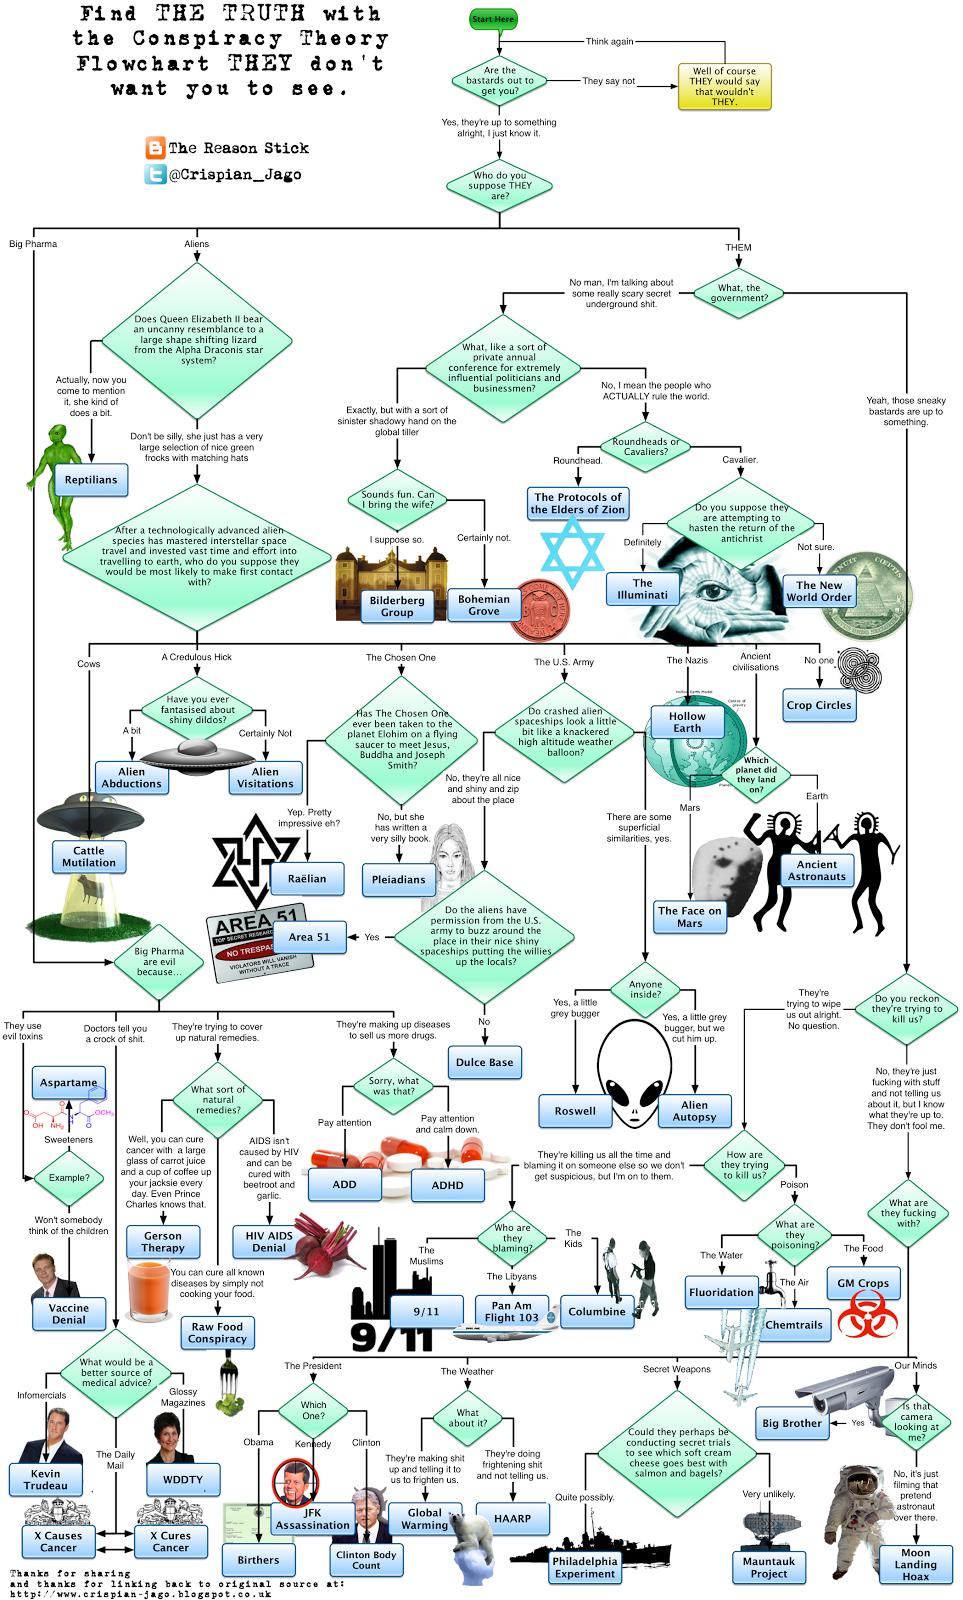 The Reason Stick The Conspiracy Theory Flowchart Quot They